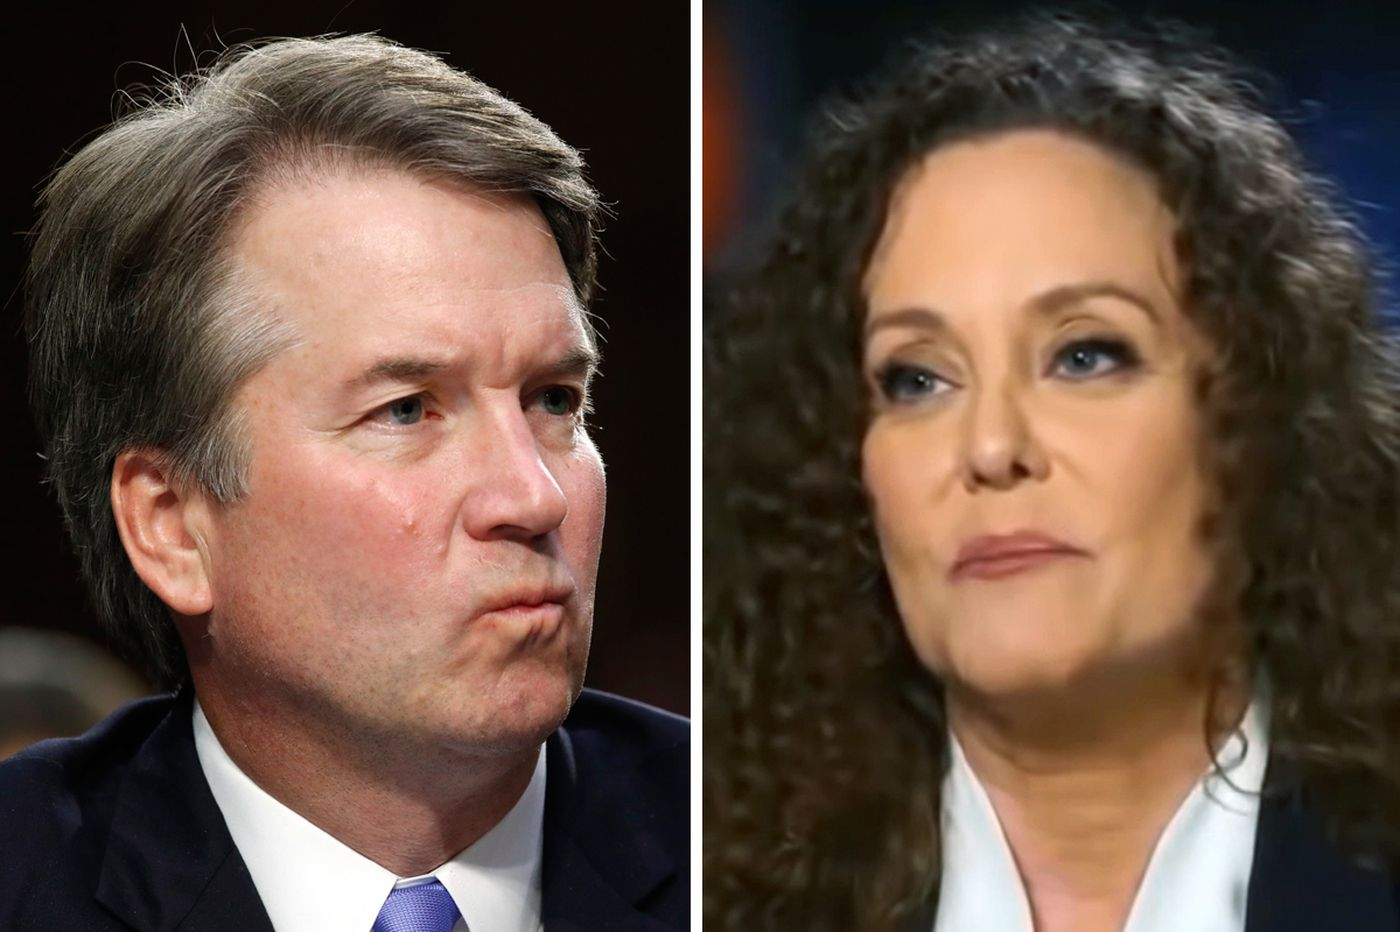 Kavanaugh news: Julie Swetnick's NBC interview raises new questions